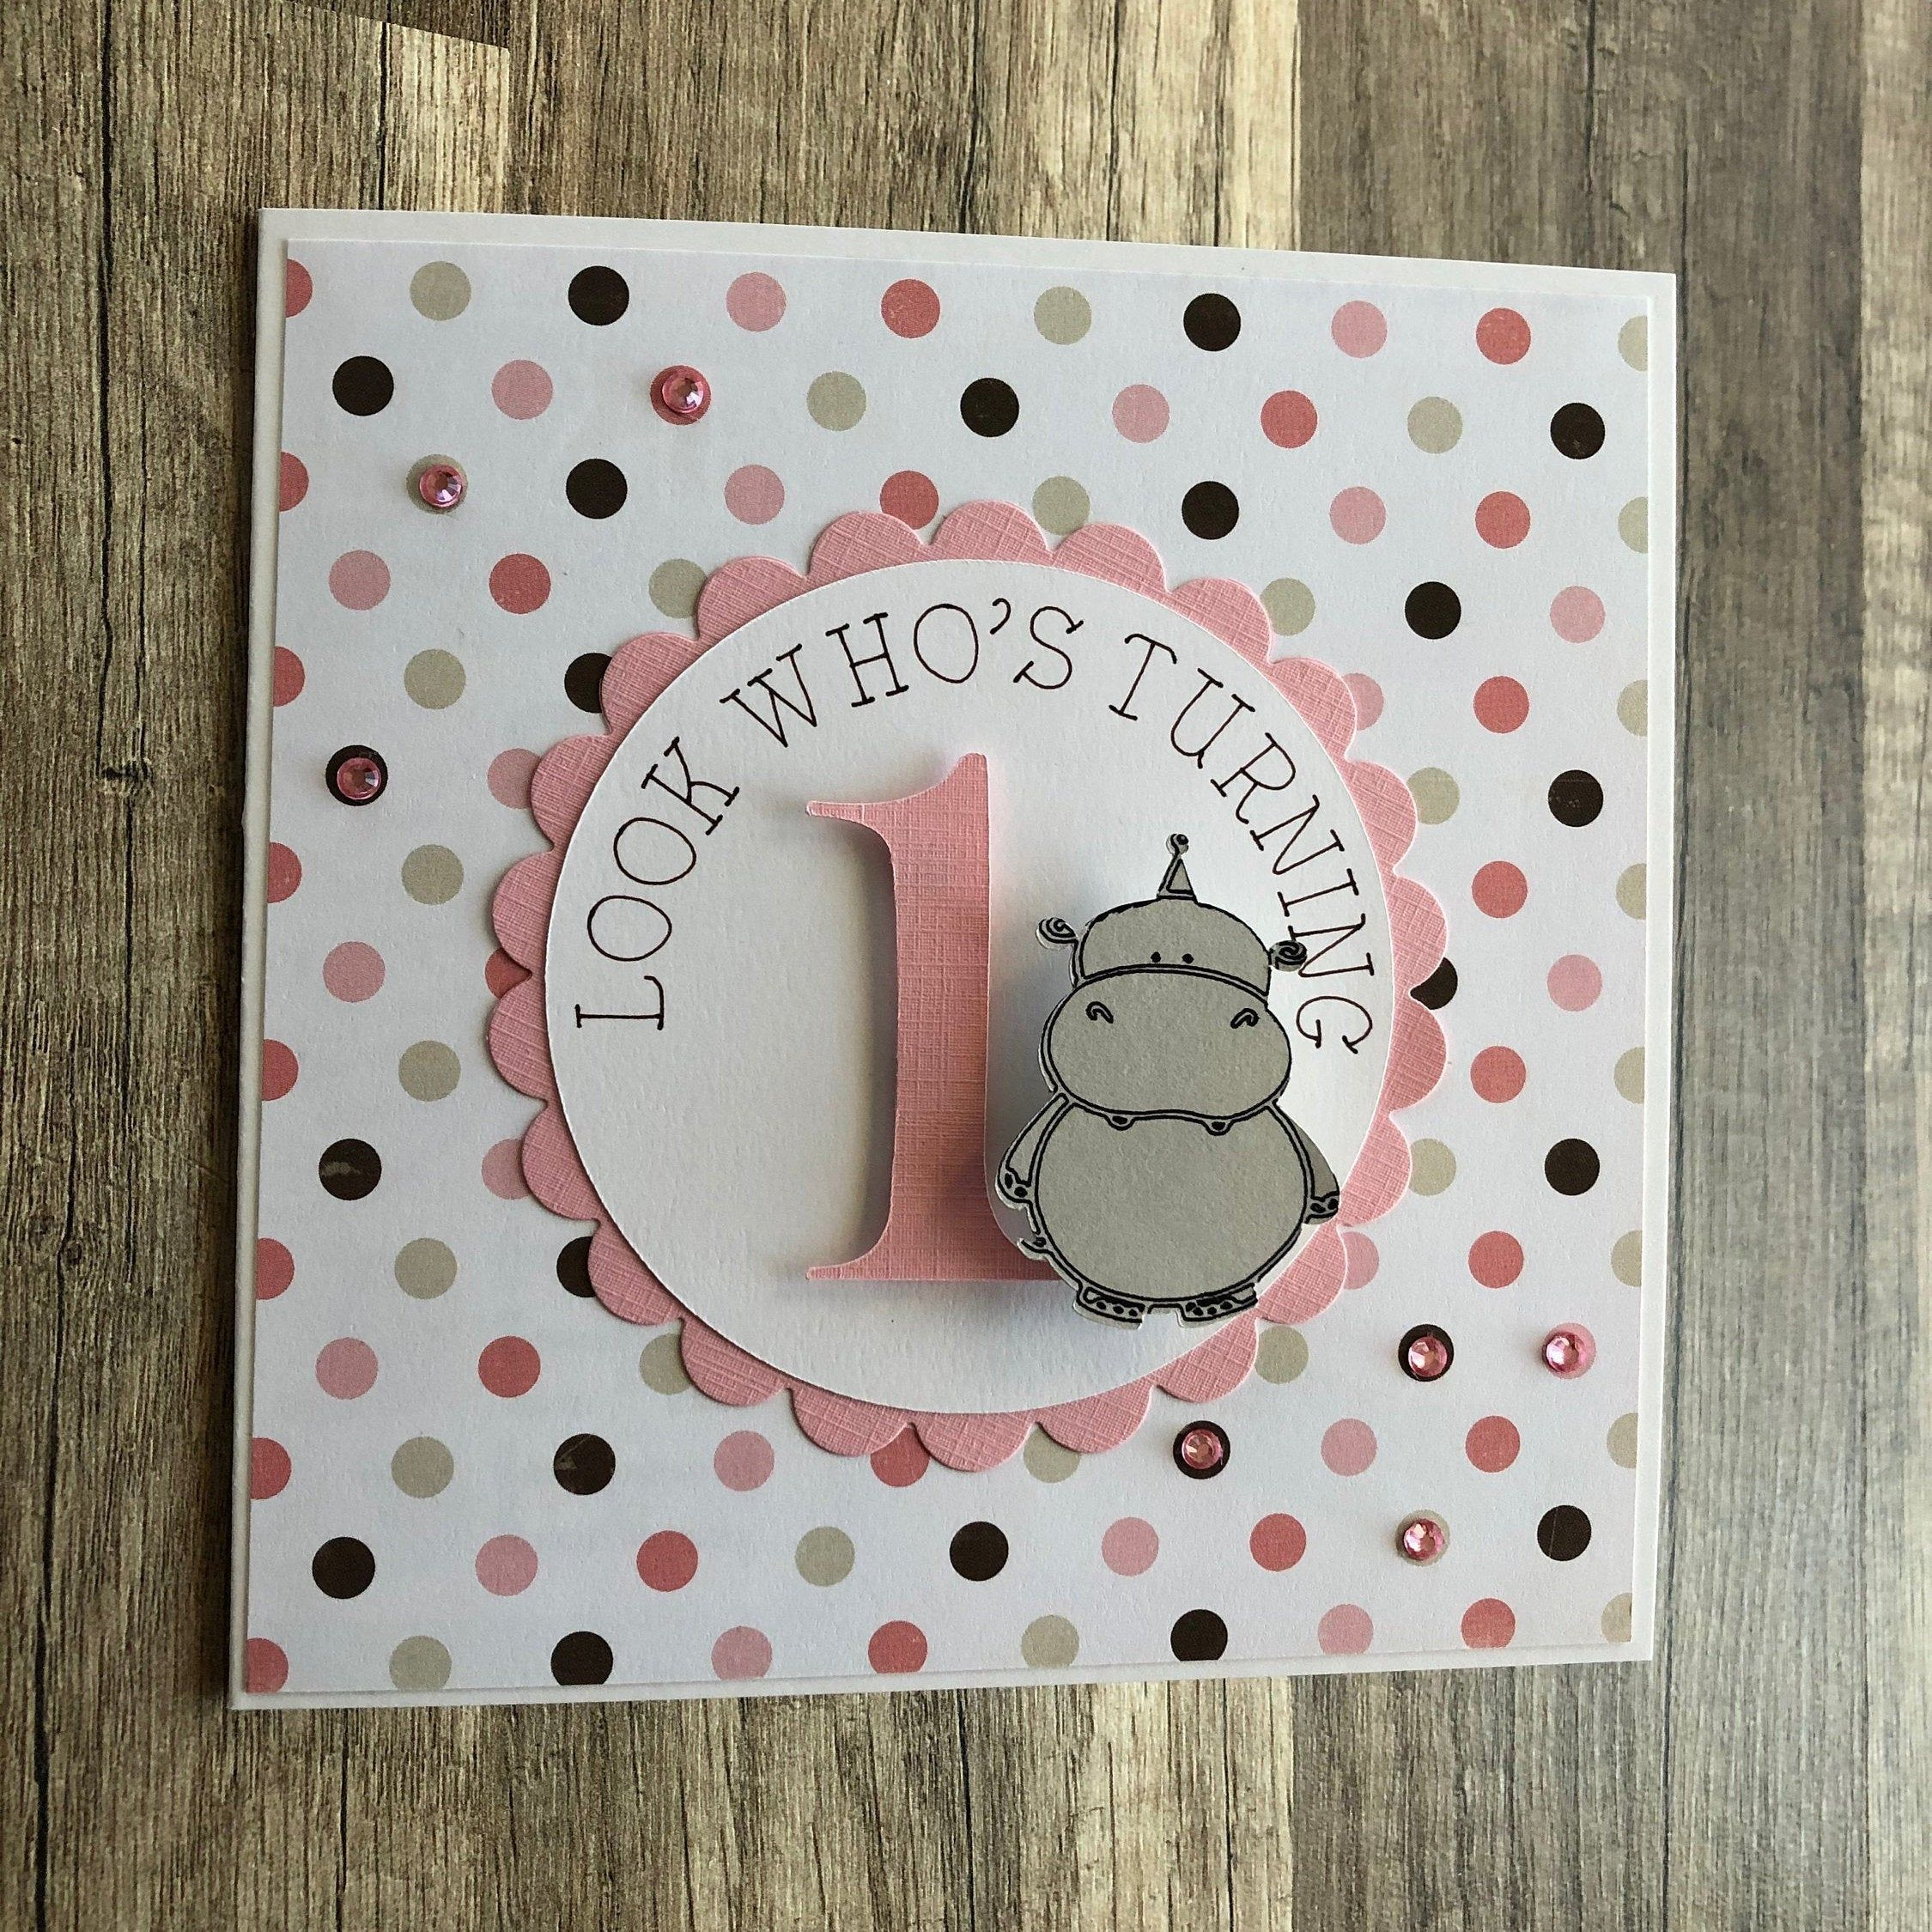 First Birthday Card, Baby's First Birthday, Baby Hippo First Birthday Card, Daughter's First Birthday, Granddaughter's First Birthday